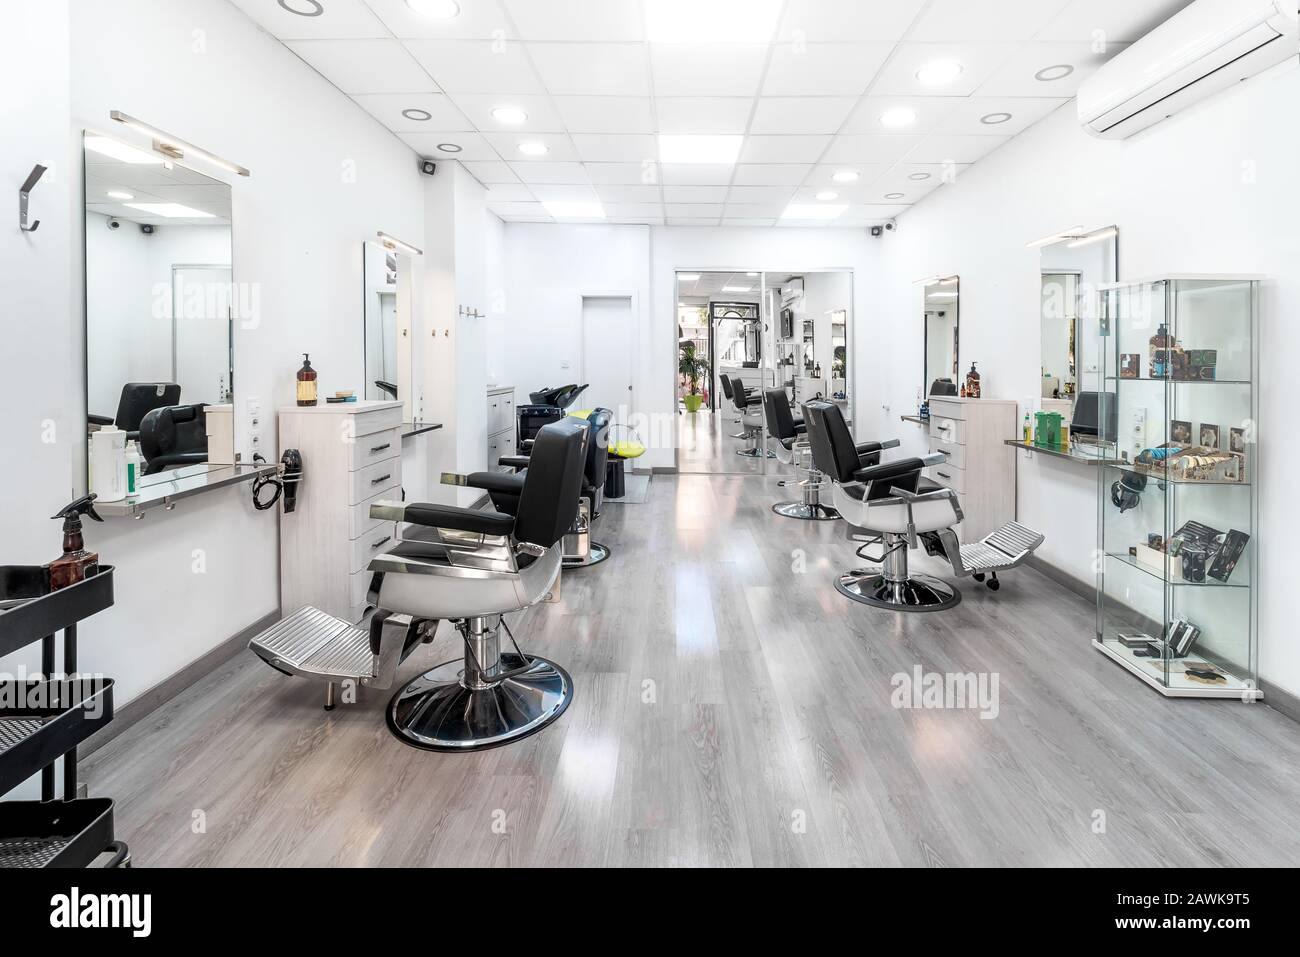 Modern Bright Hair And Beauty Salon Barber Salon Interior Business With Black And White Luxury Decor Stock Photo Alamy